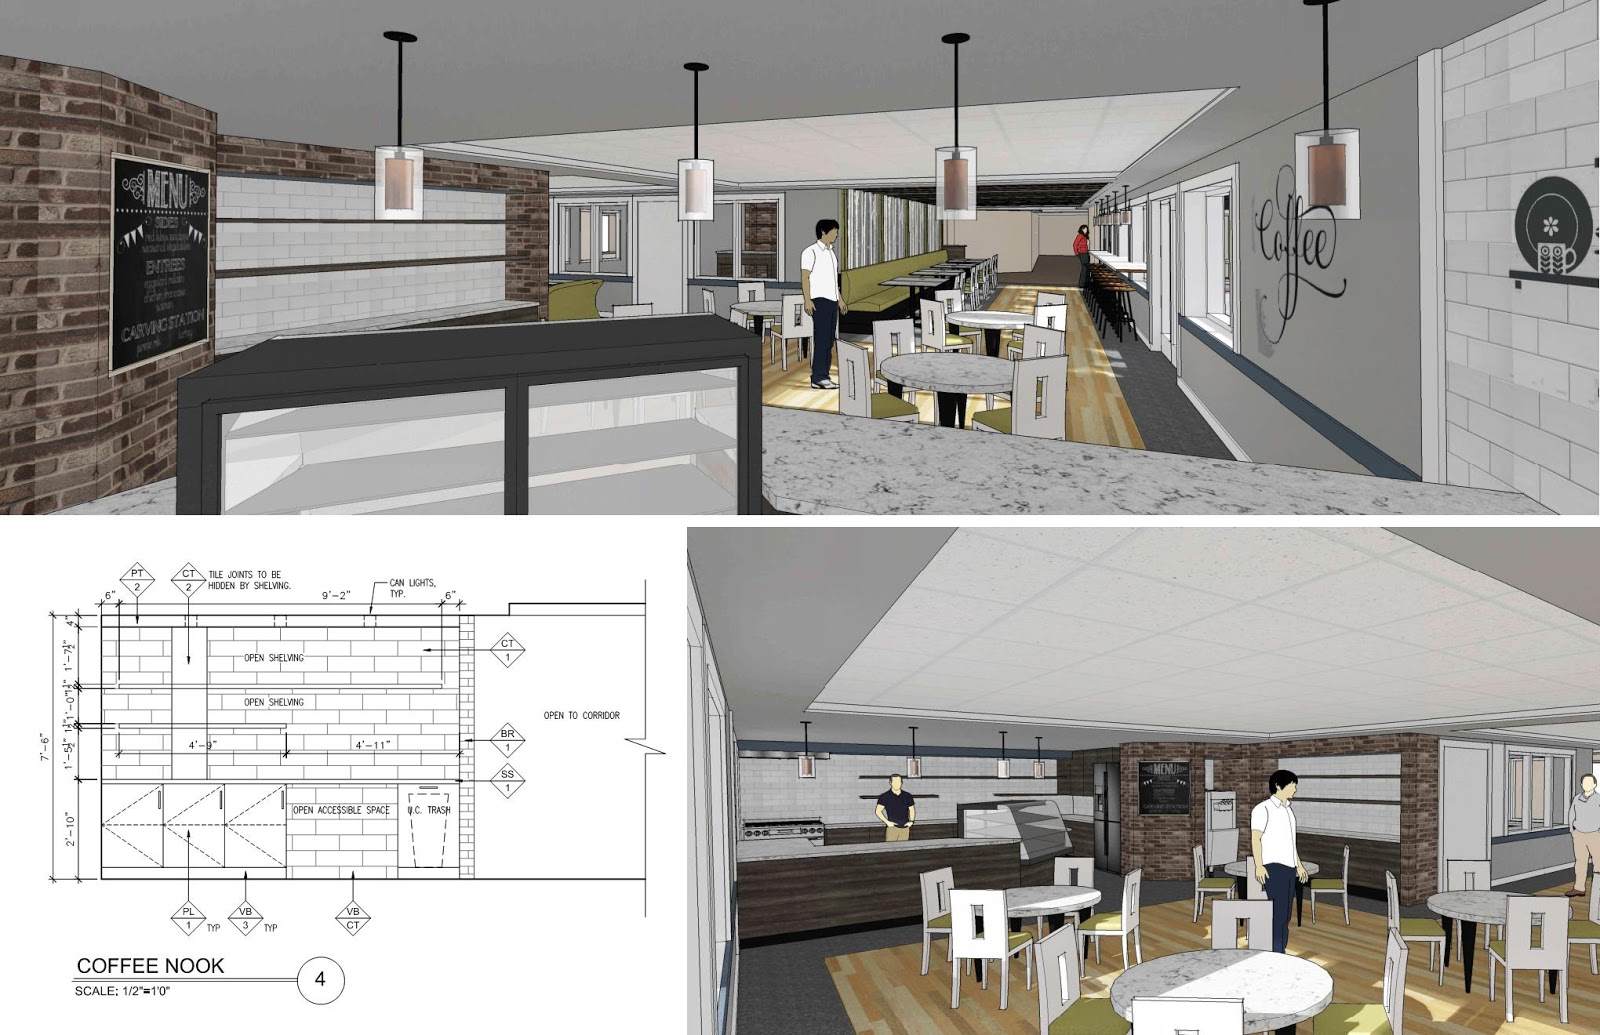 Thrive Architects, Llc: A Design to Reinvent the Way We Live ... on greenhouse model nursing home, wall art for nursing home, wagon wheel design plans nursing home,